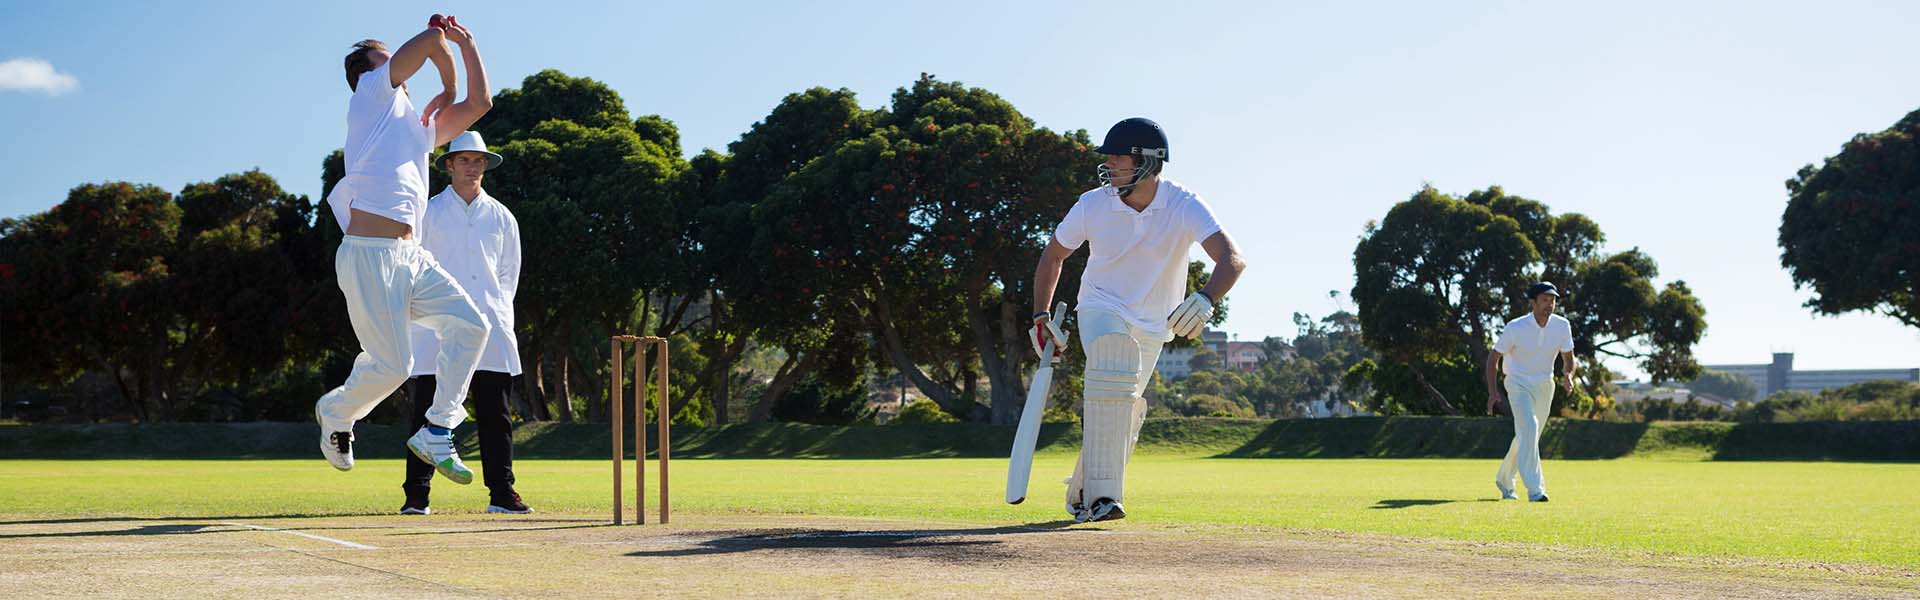 Playing cricket match, delivering the ball